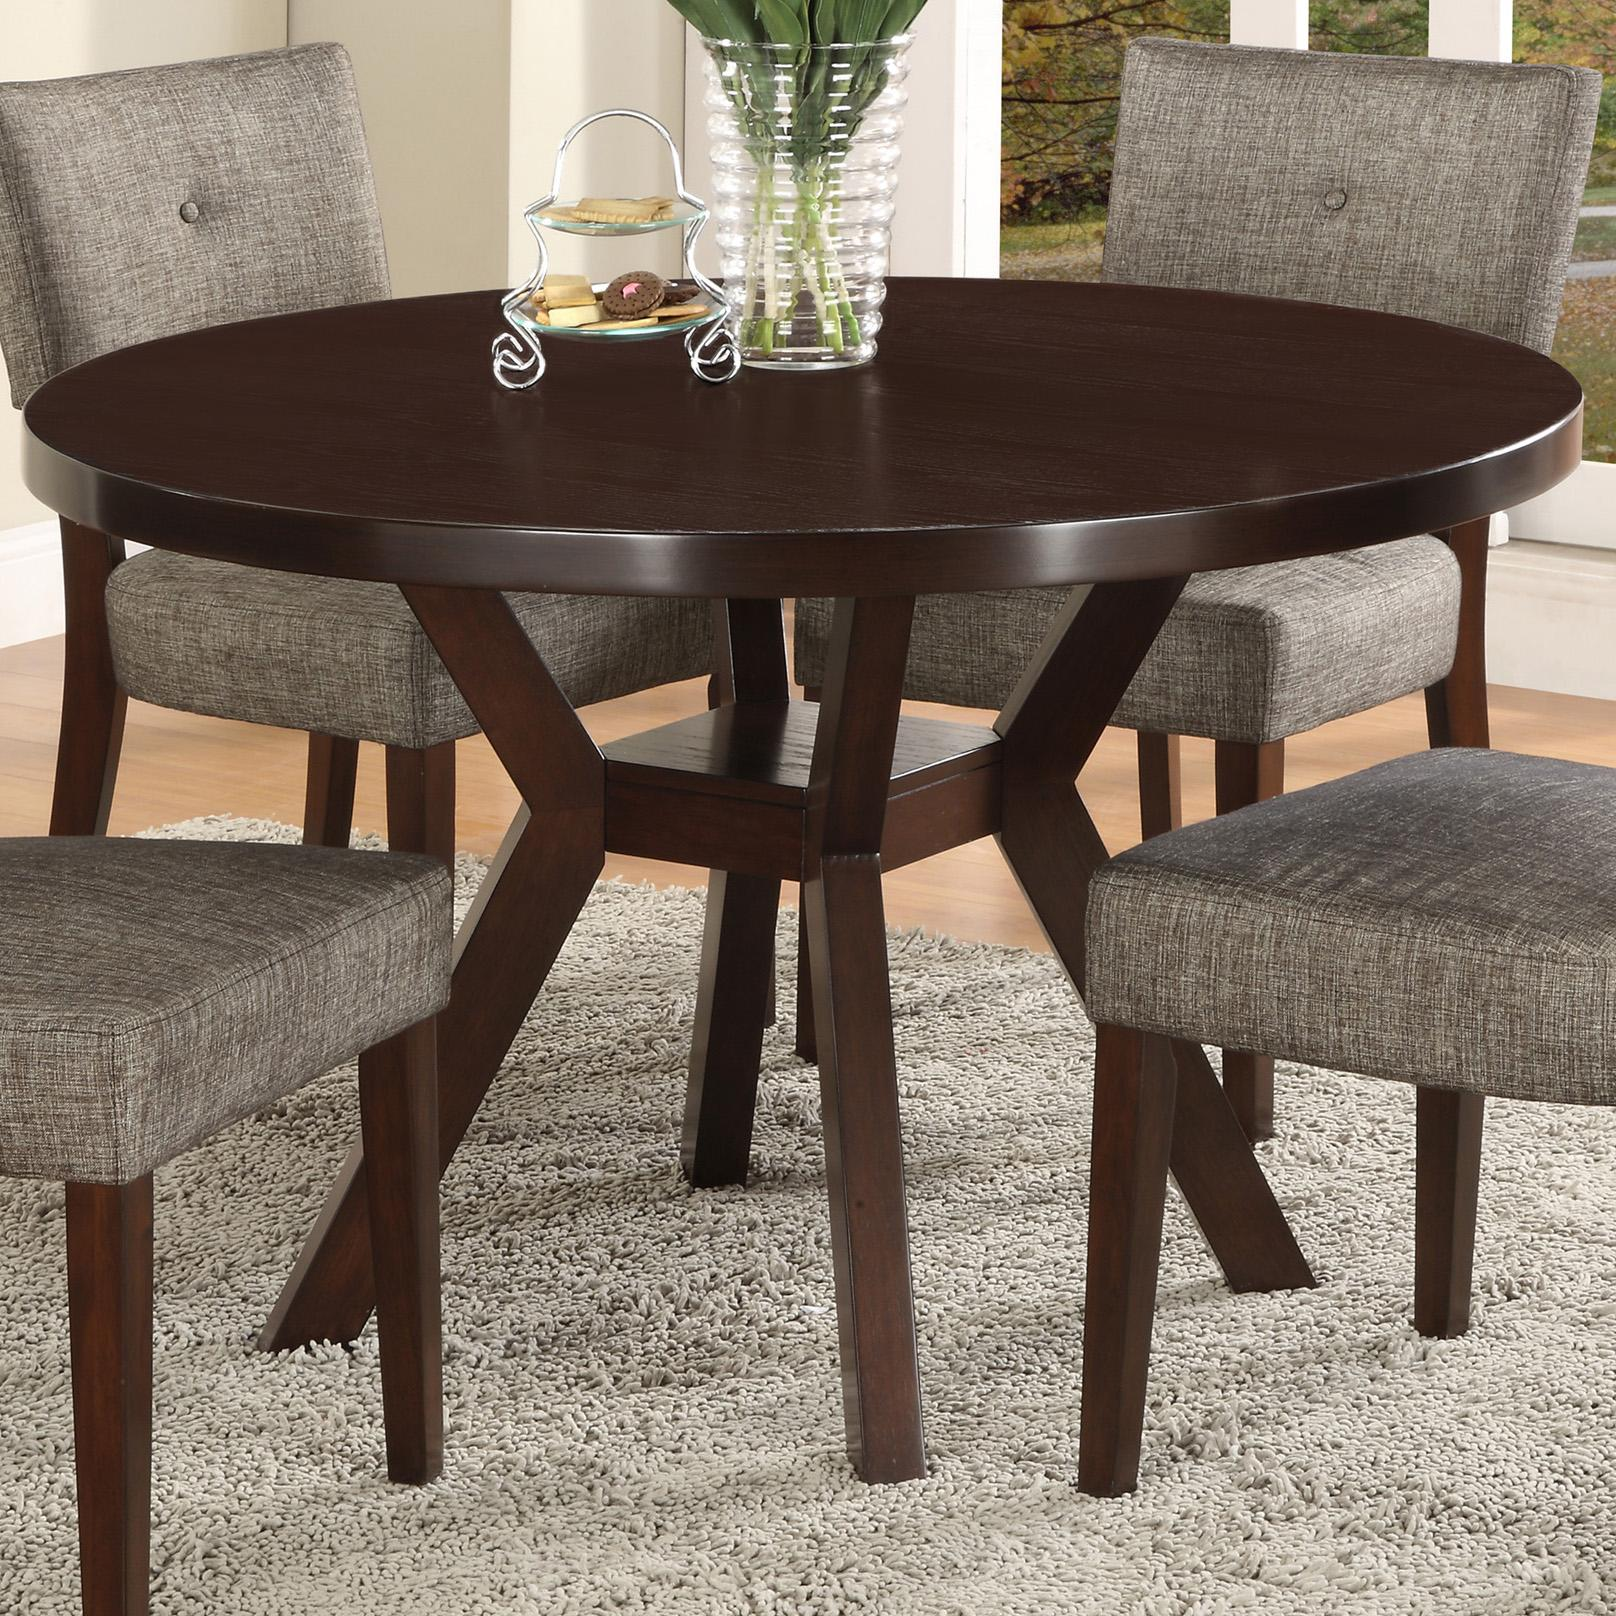 Crown mark kayla 2610t 48 round trestle base dining table for Dining room tables 48 round